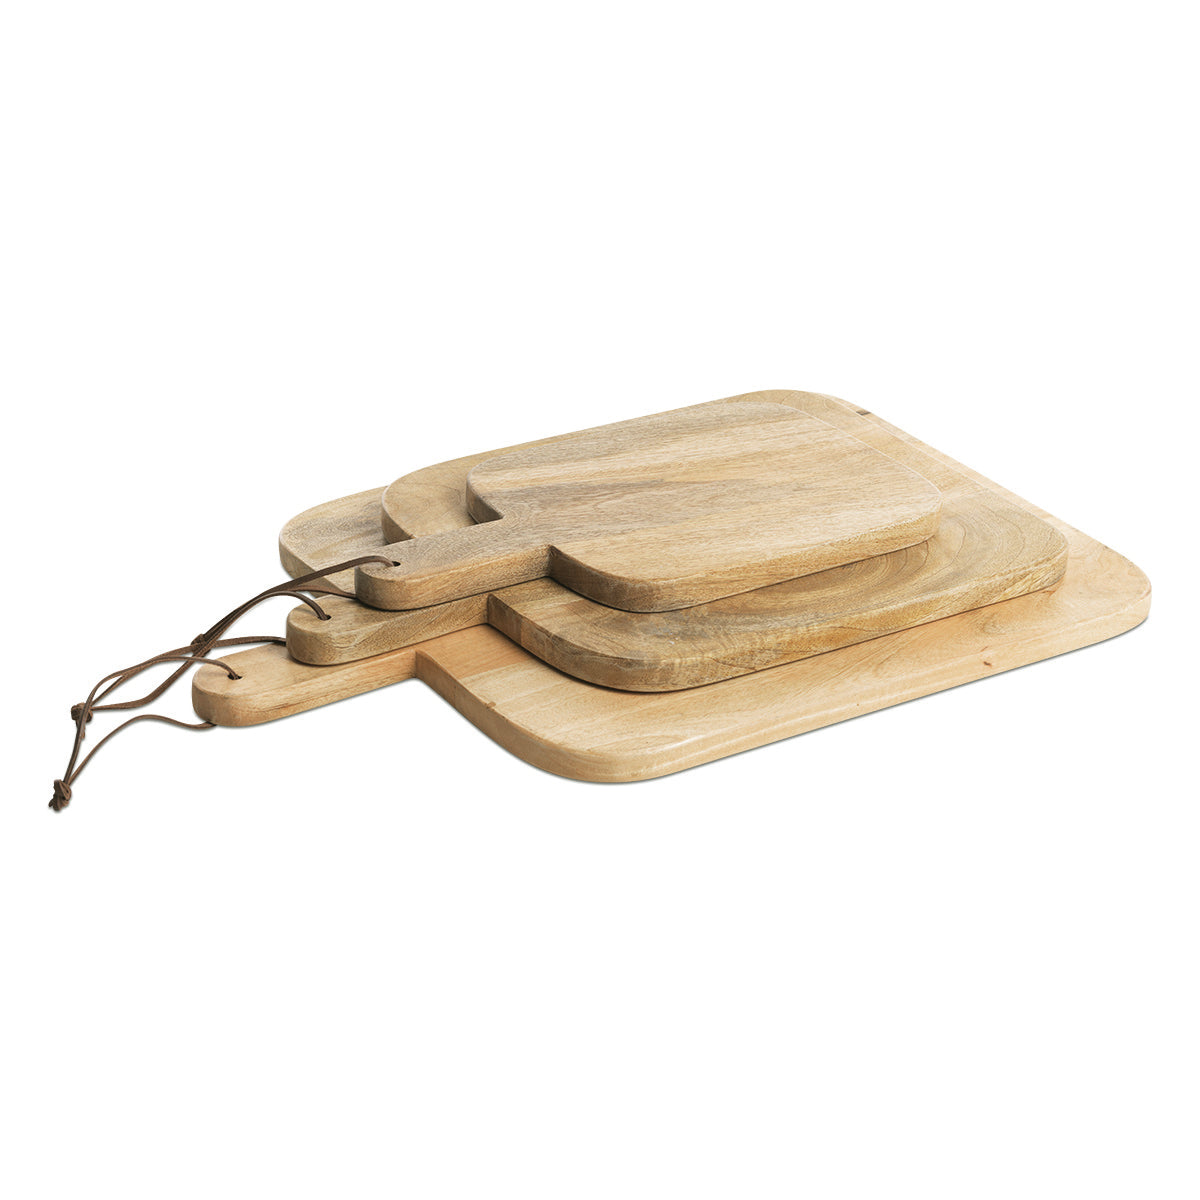 Niju Chopping Board Natural MED